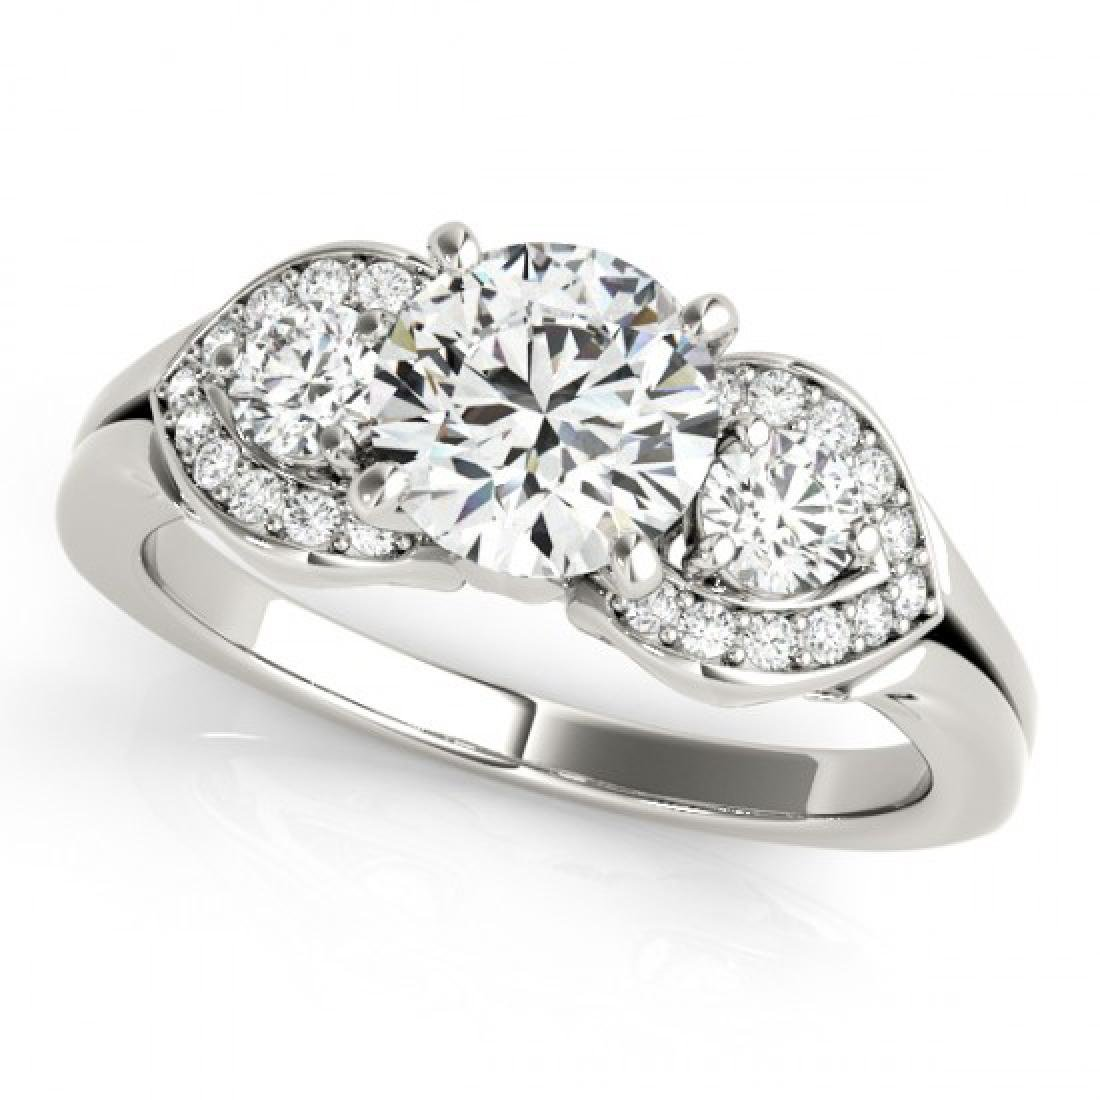 1.45 CTW Certified VS/SI Diamond 3 Stone Ring 14K White